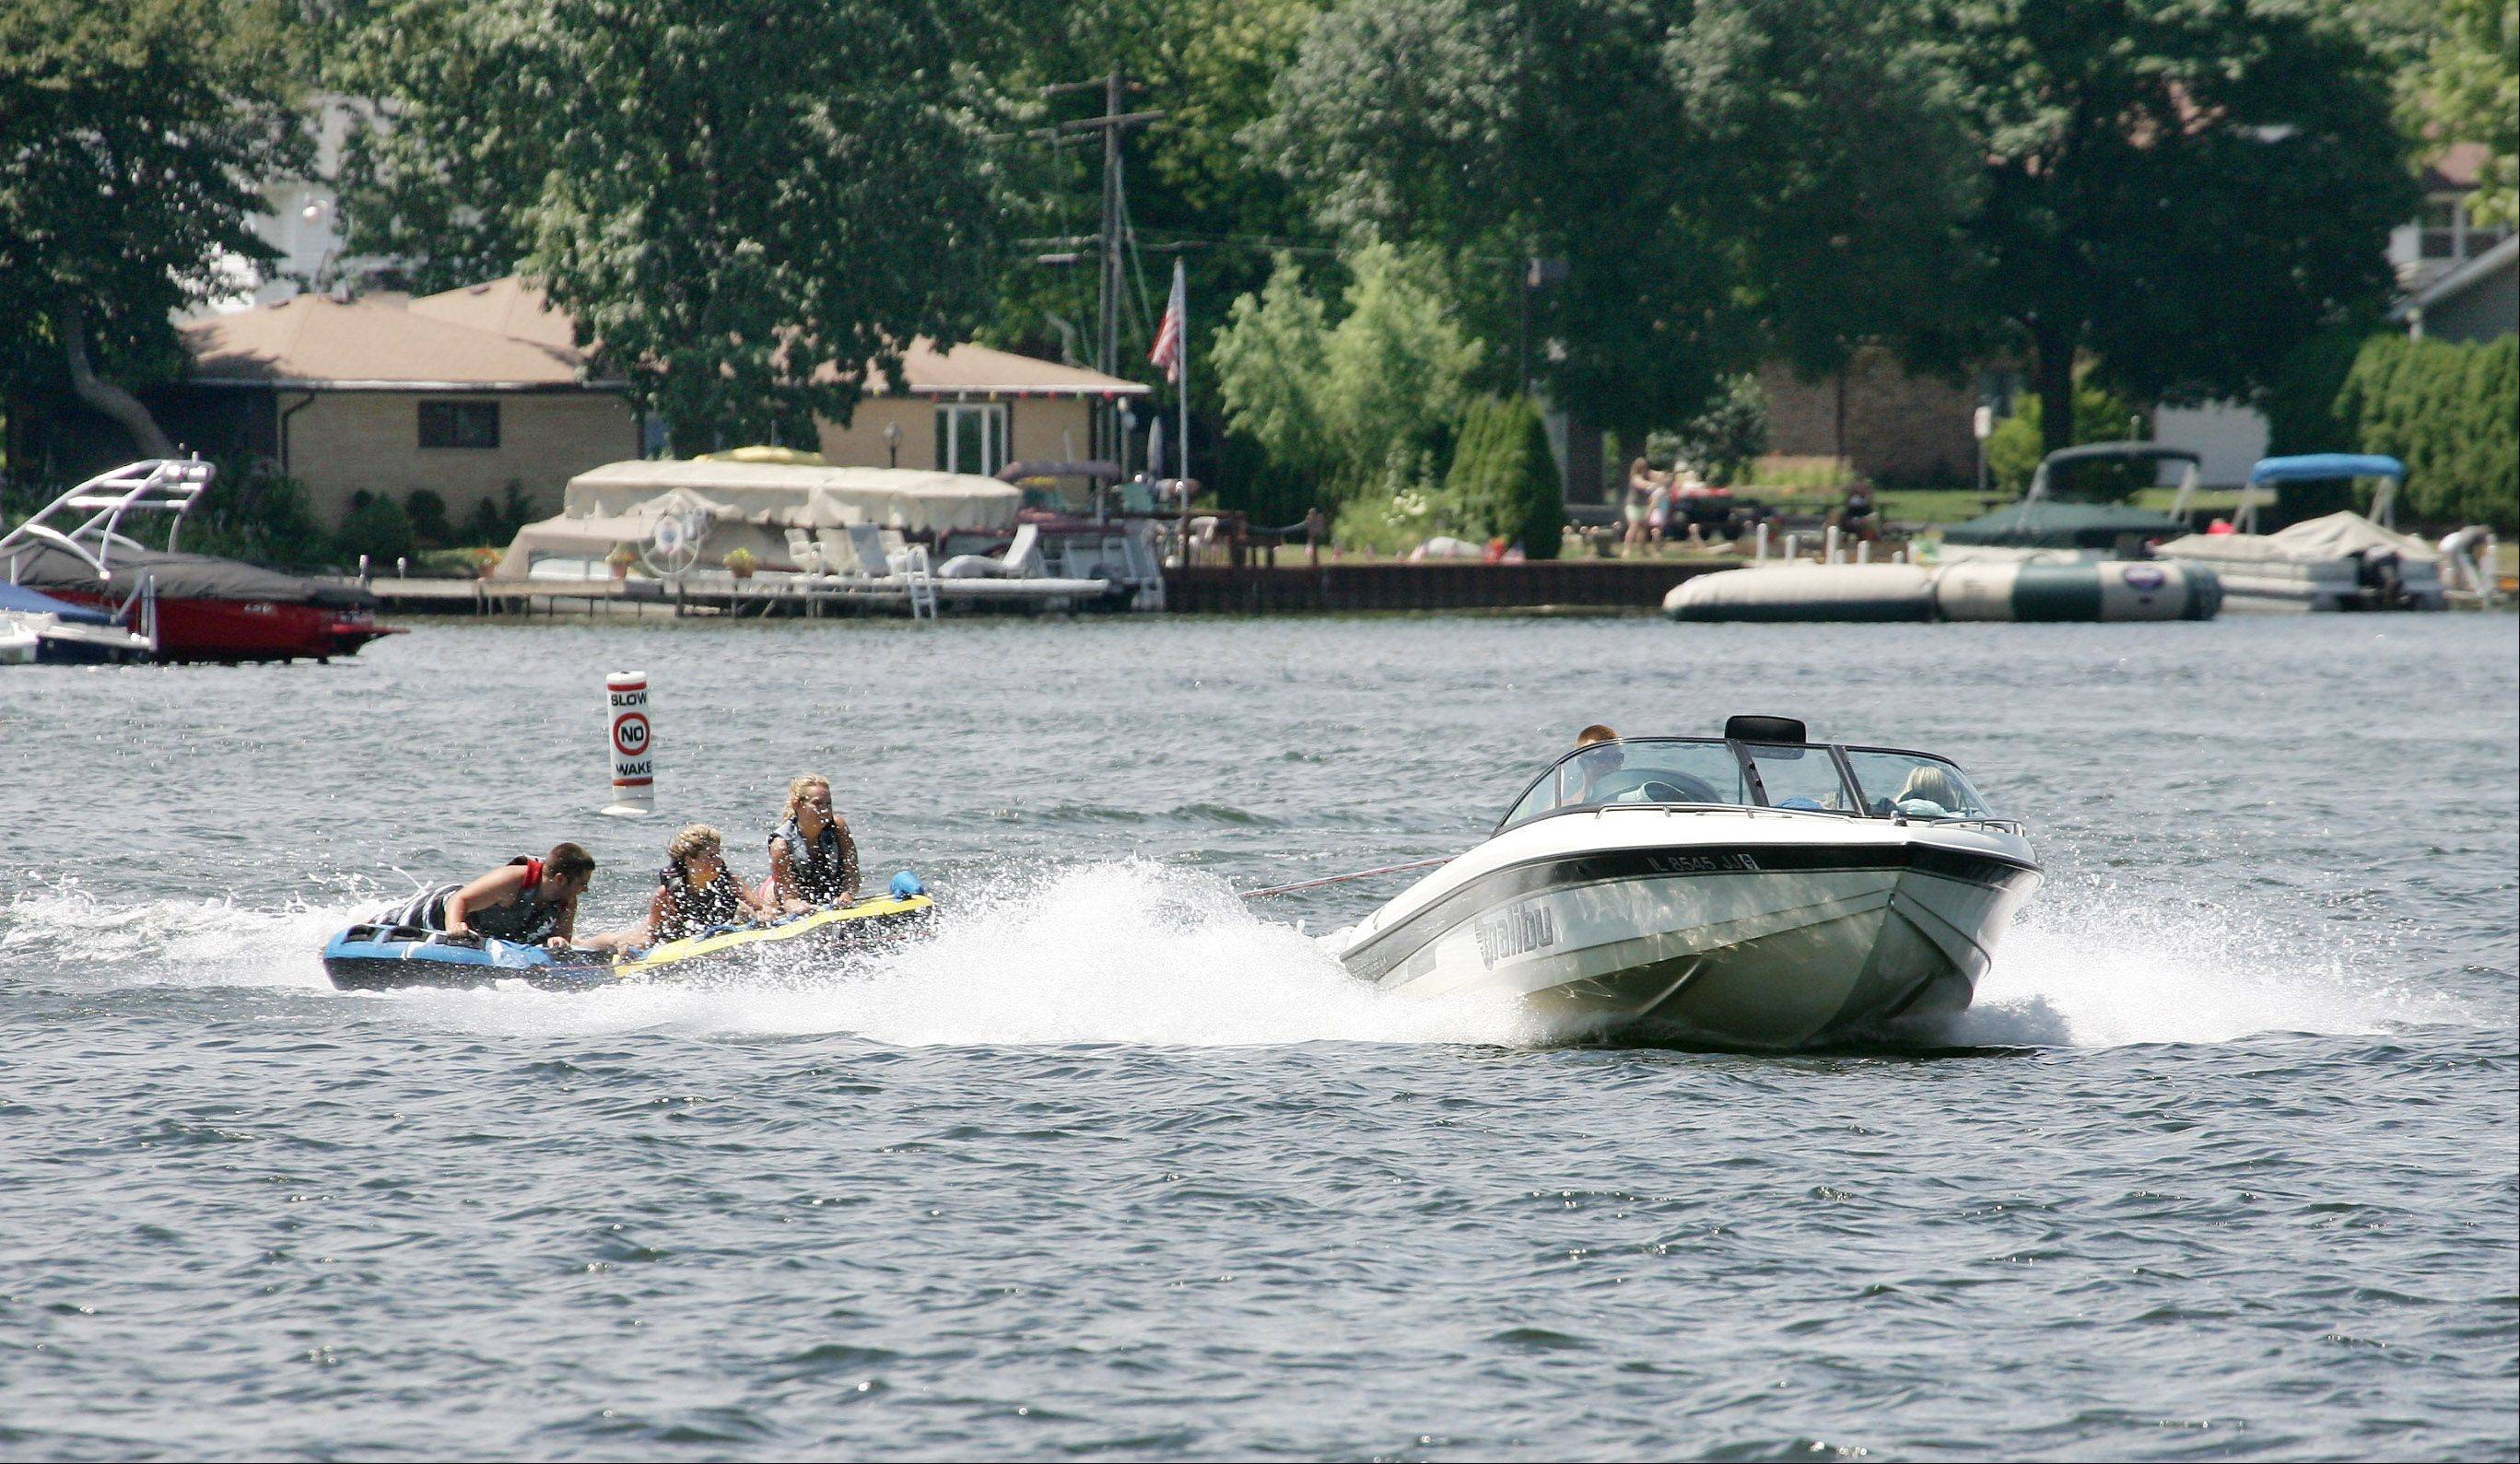 Editorial: Law is timely emphasis to keep waterways fun, safe